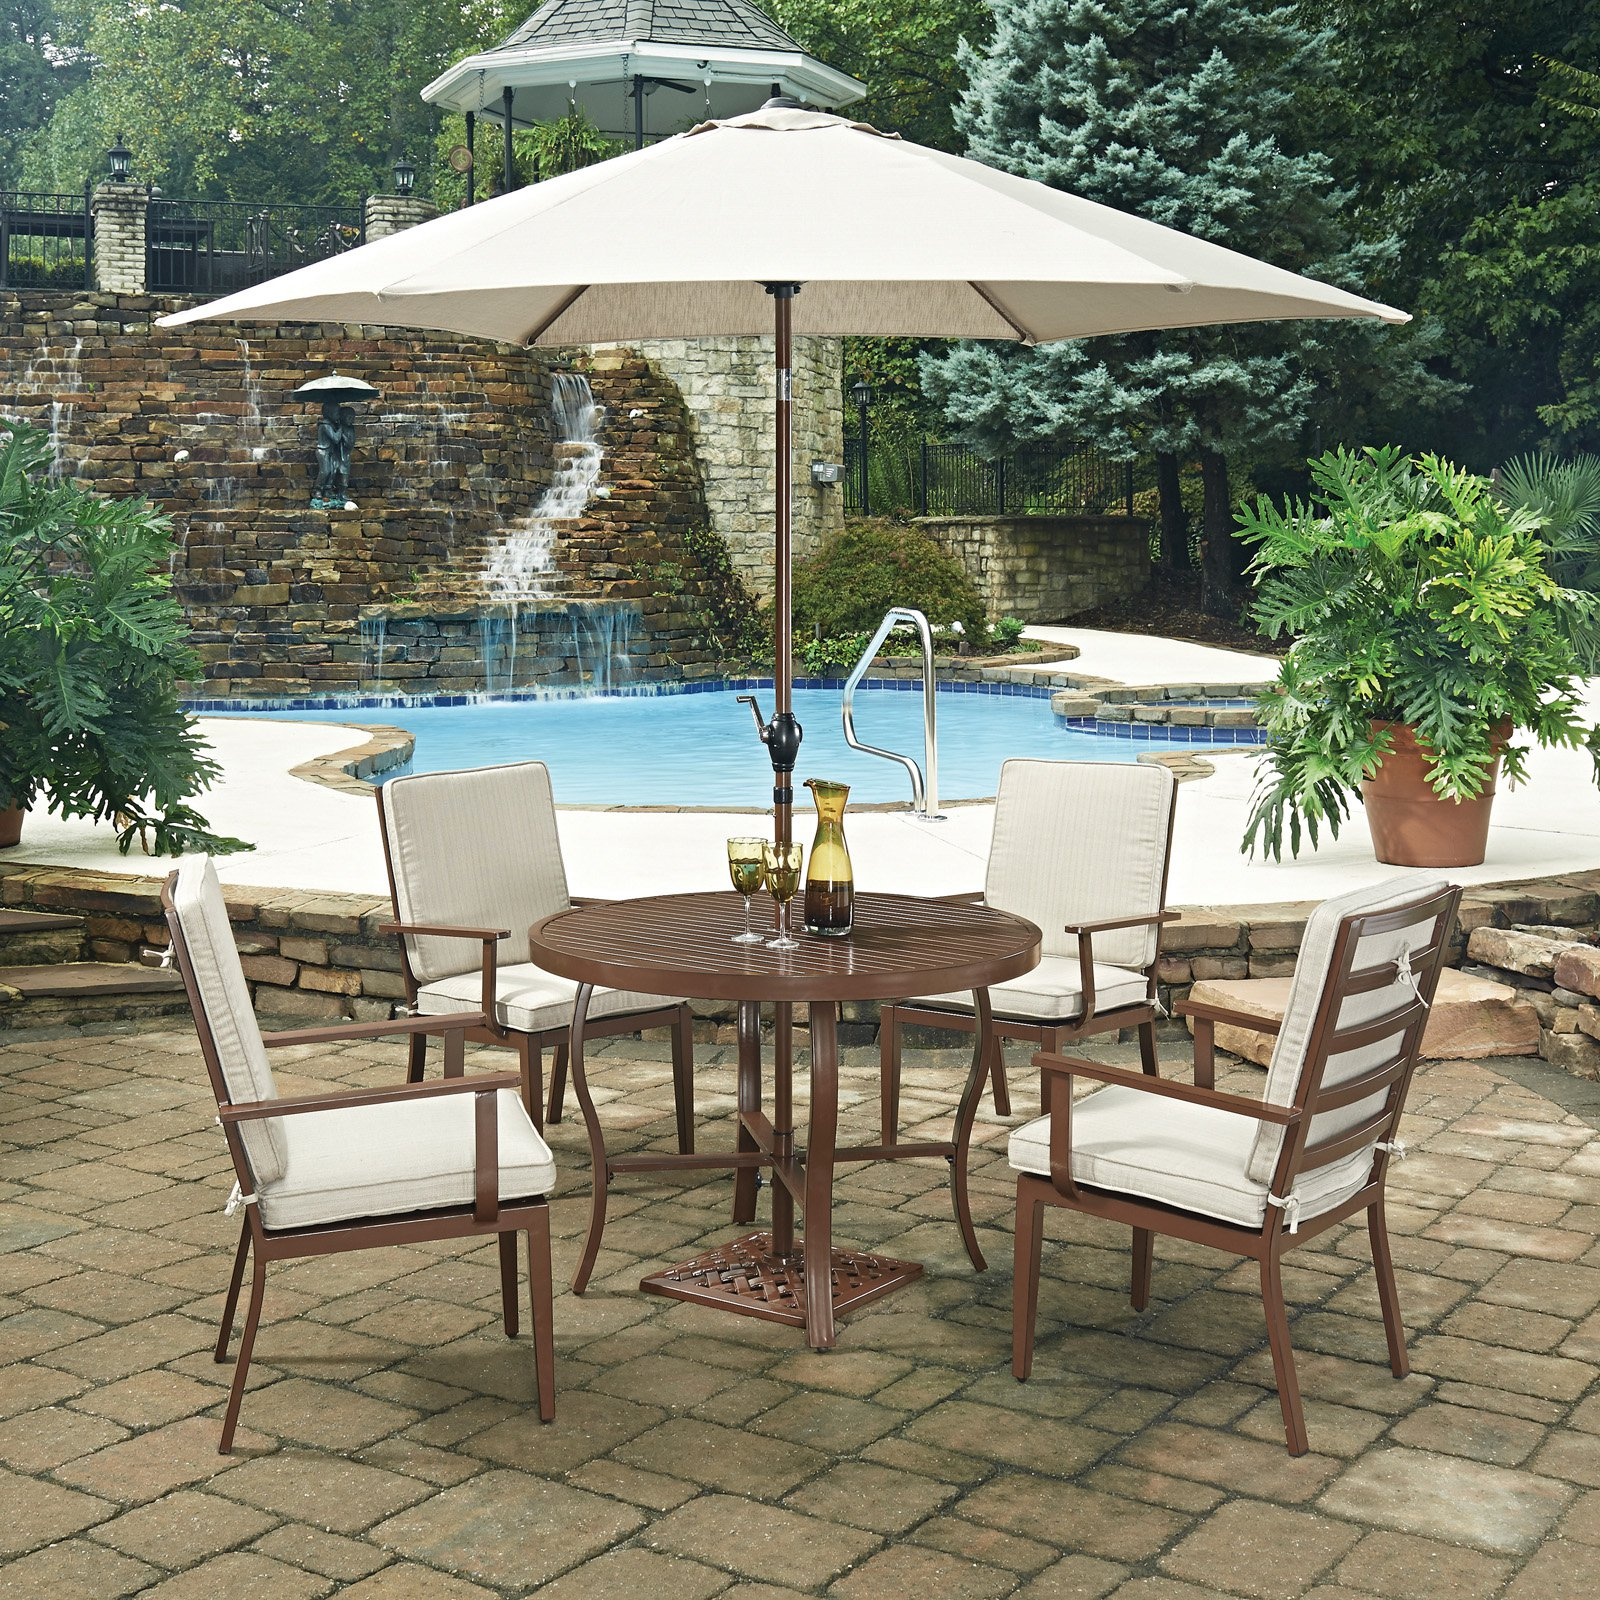 Home Styles Key West 7 Piece 42 in. Round Outdoor Dining Set with Umbrella and Stand